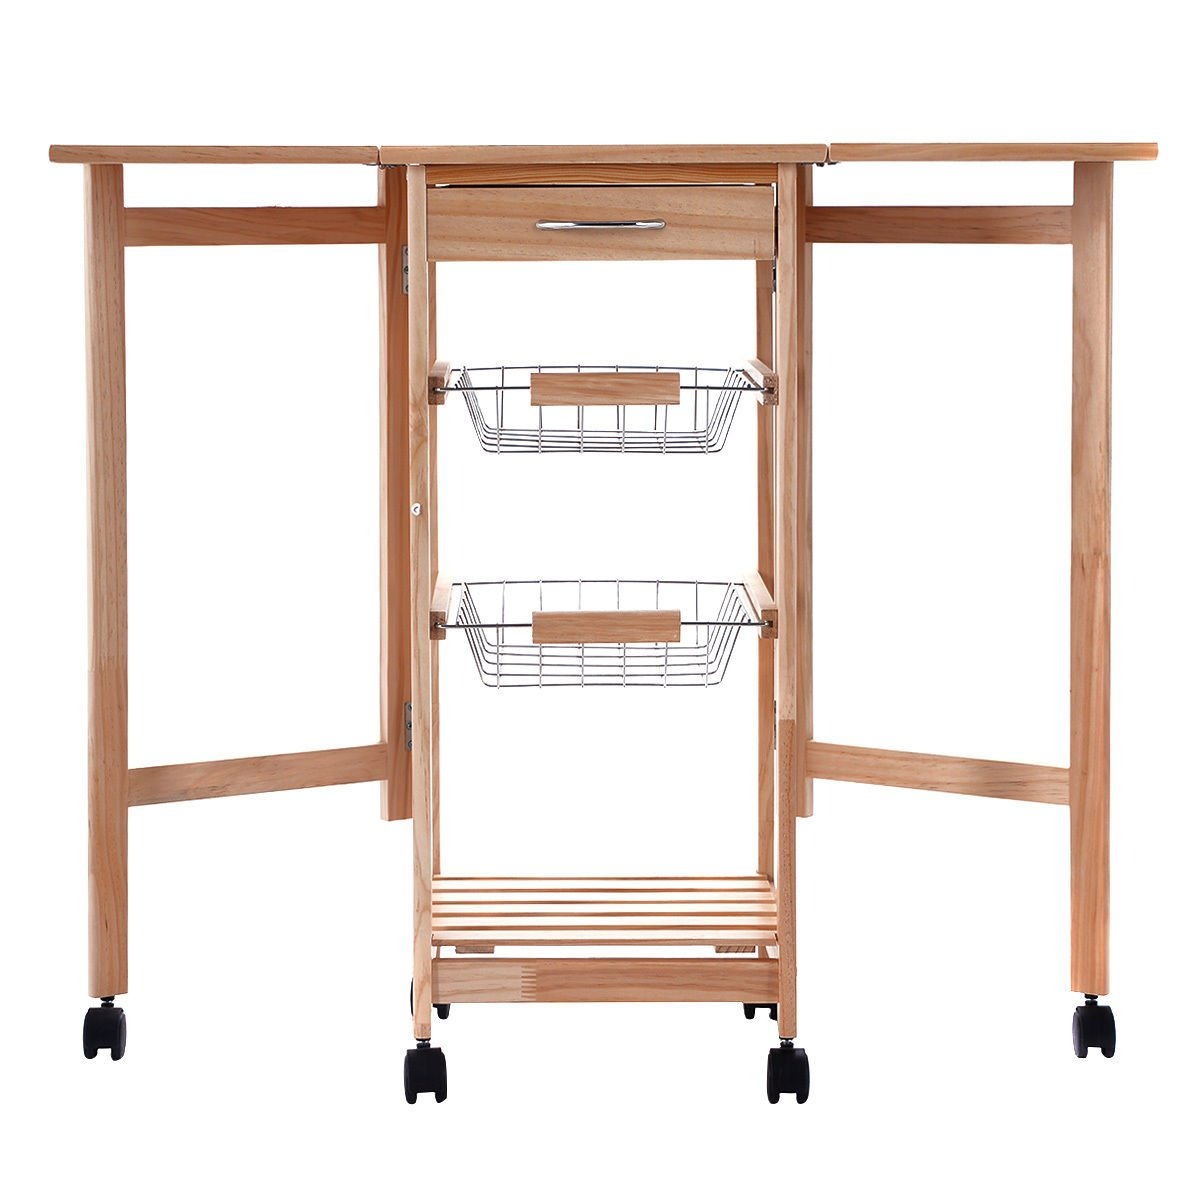 New Portable Rolling Wood Kitchen Trolley Cart Drop Leaf Storage Drawers Rack Basket